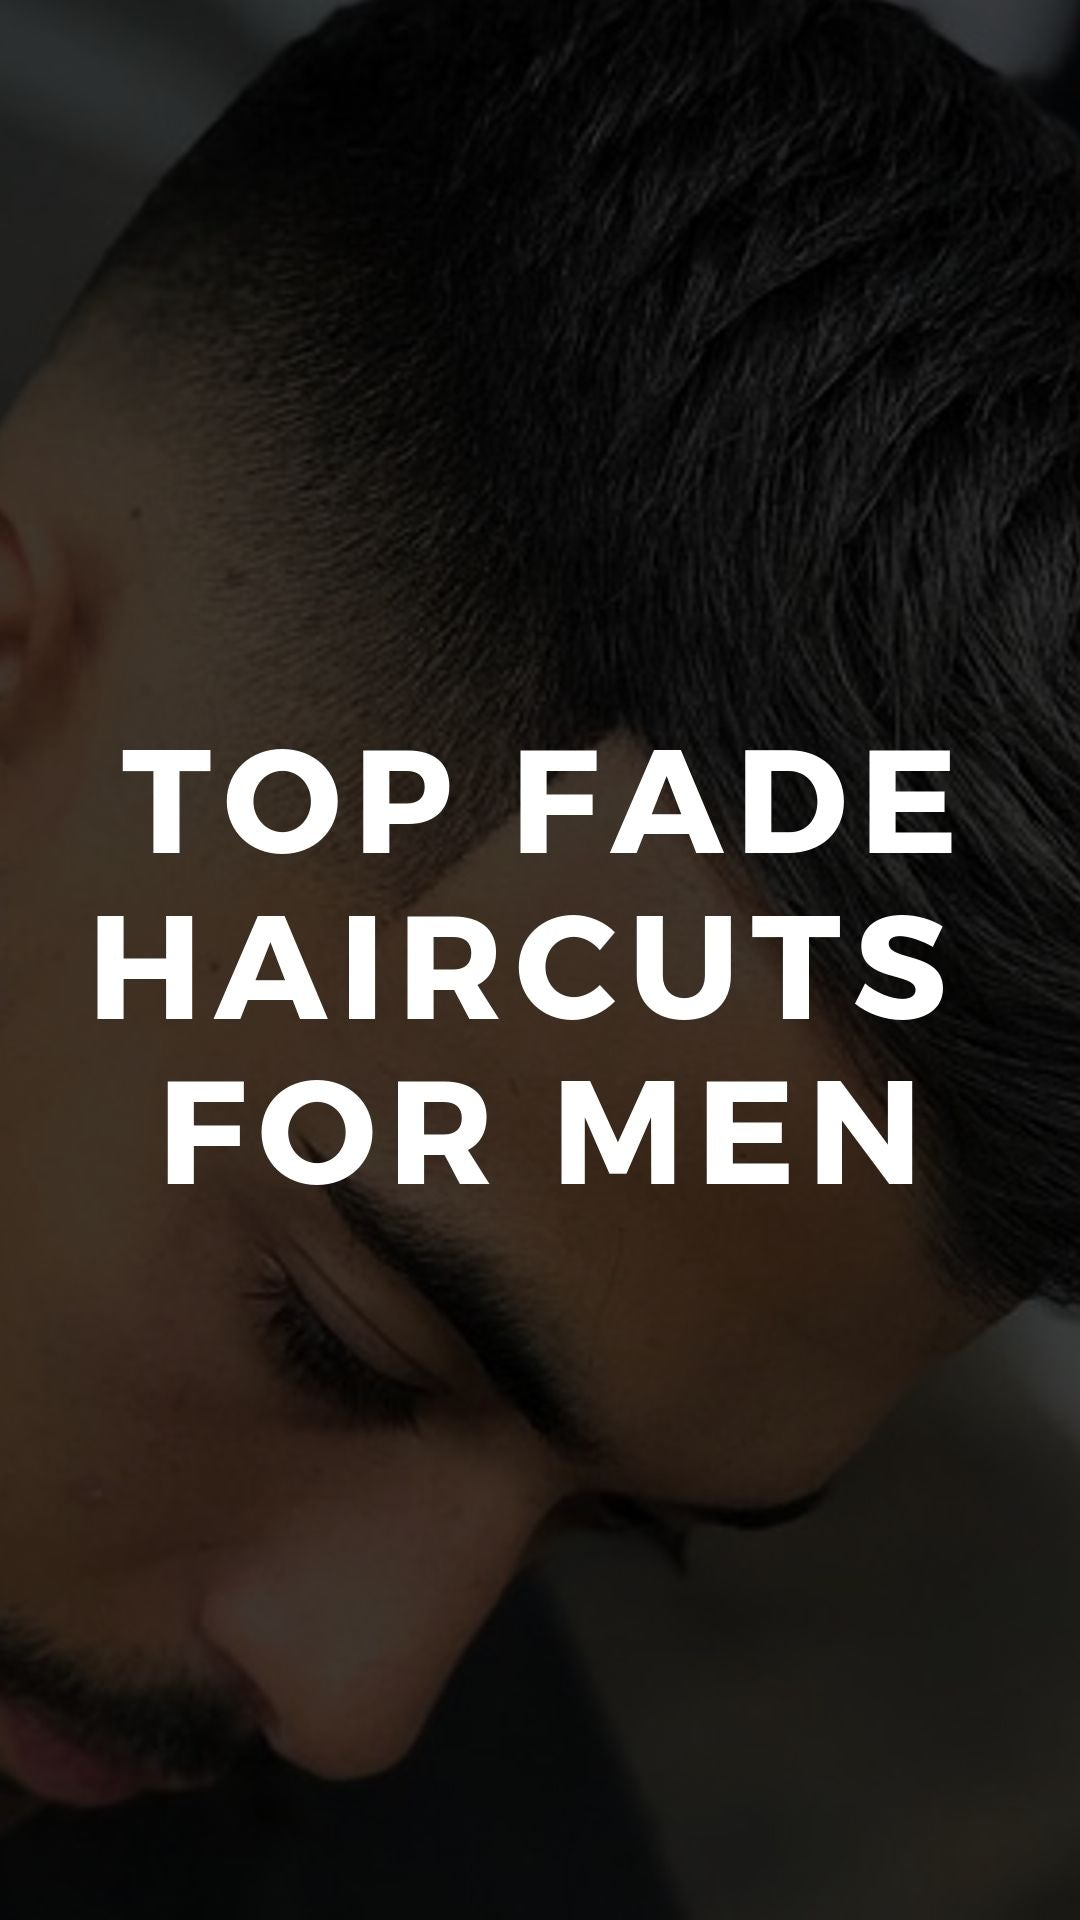 BEST FADE HAIRCUTS FOR MEN